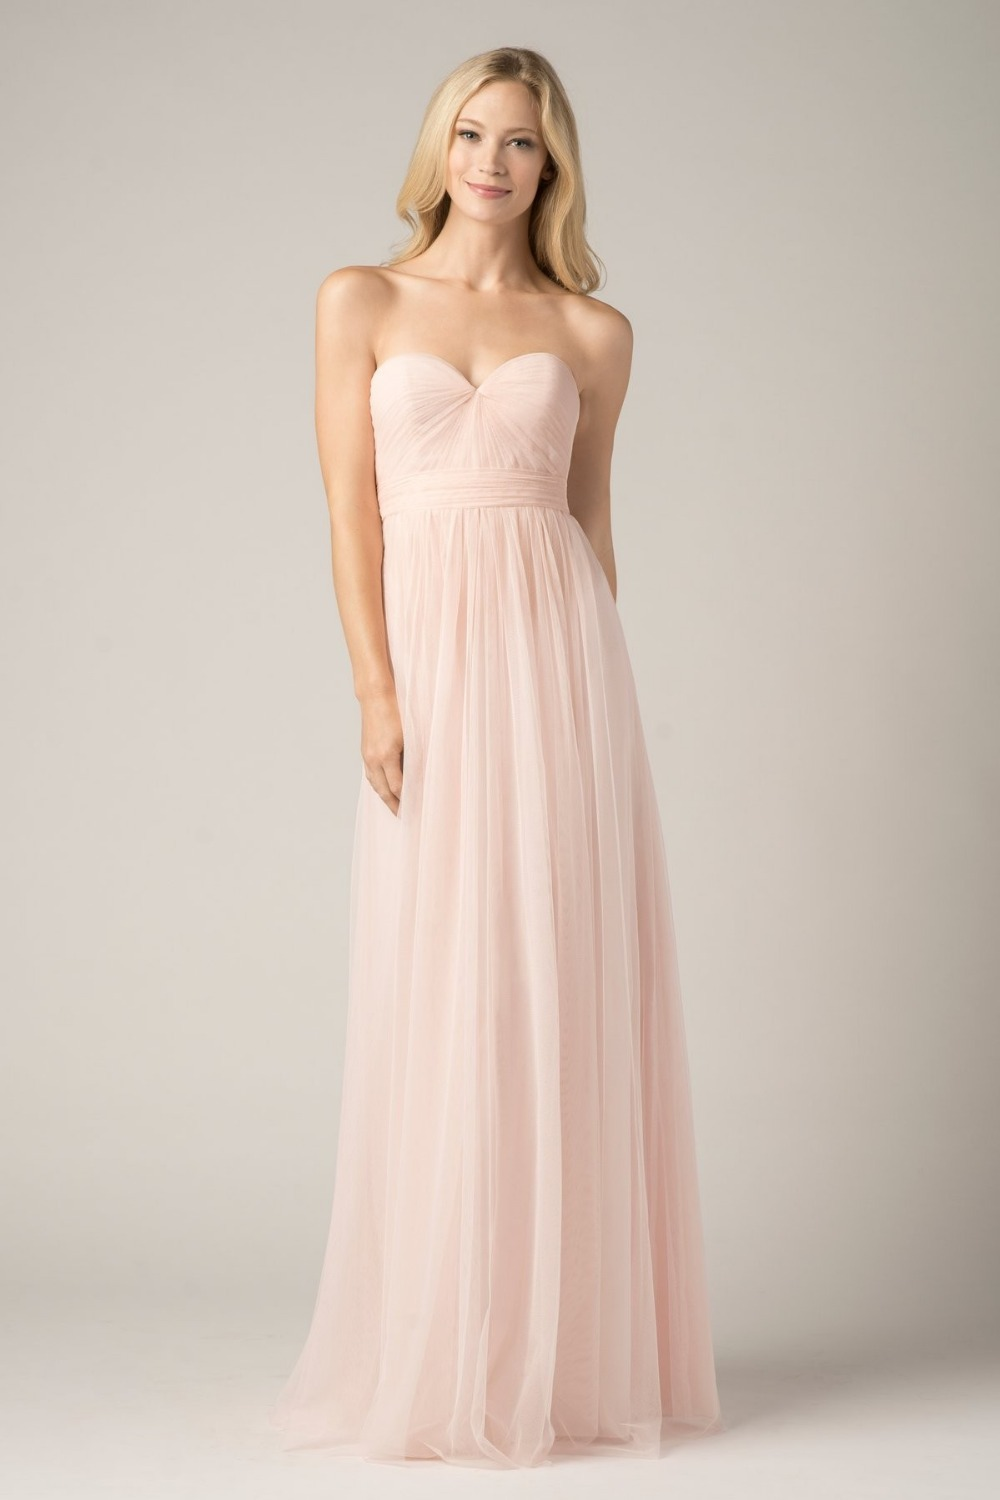 pink tulle floor-length five styles a-line long bridesmaid dress 2015 new hot sale vestido de festa(China (Mainland))